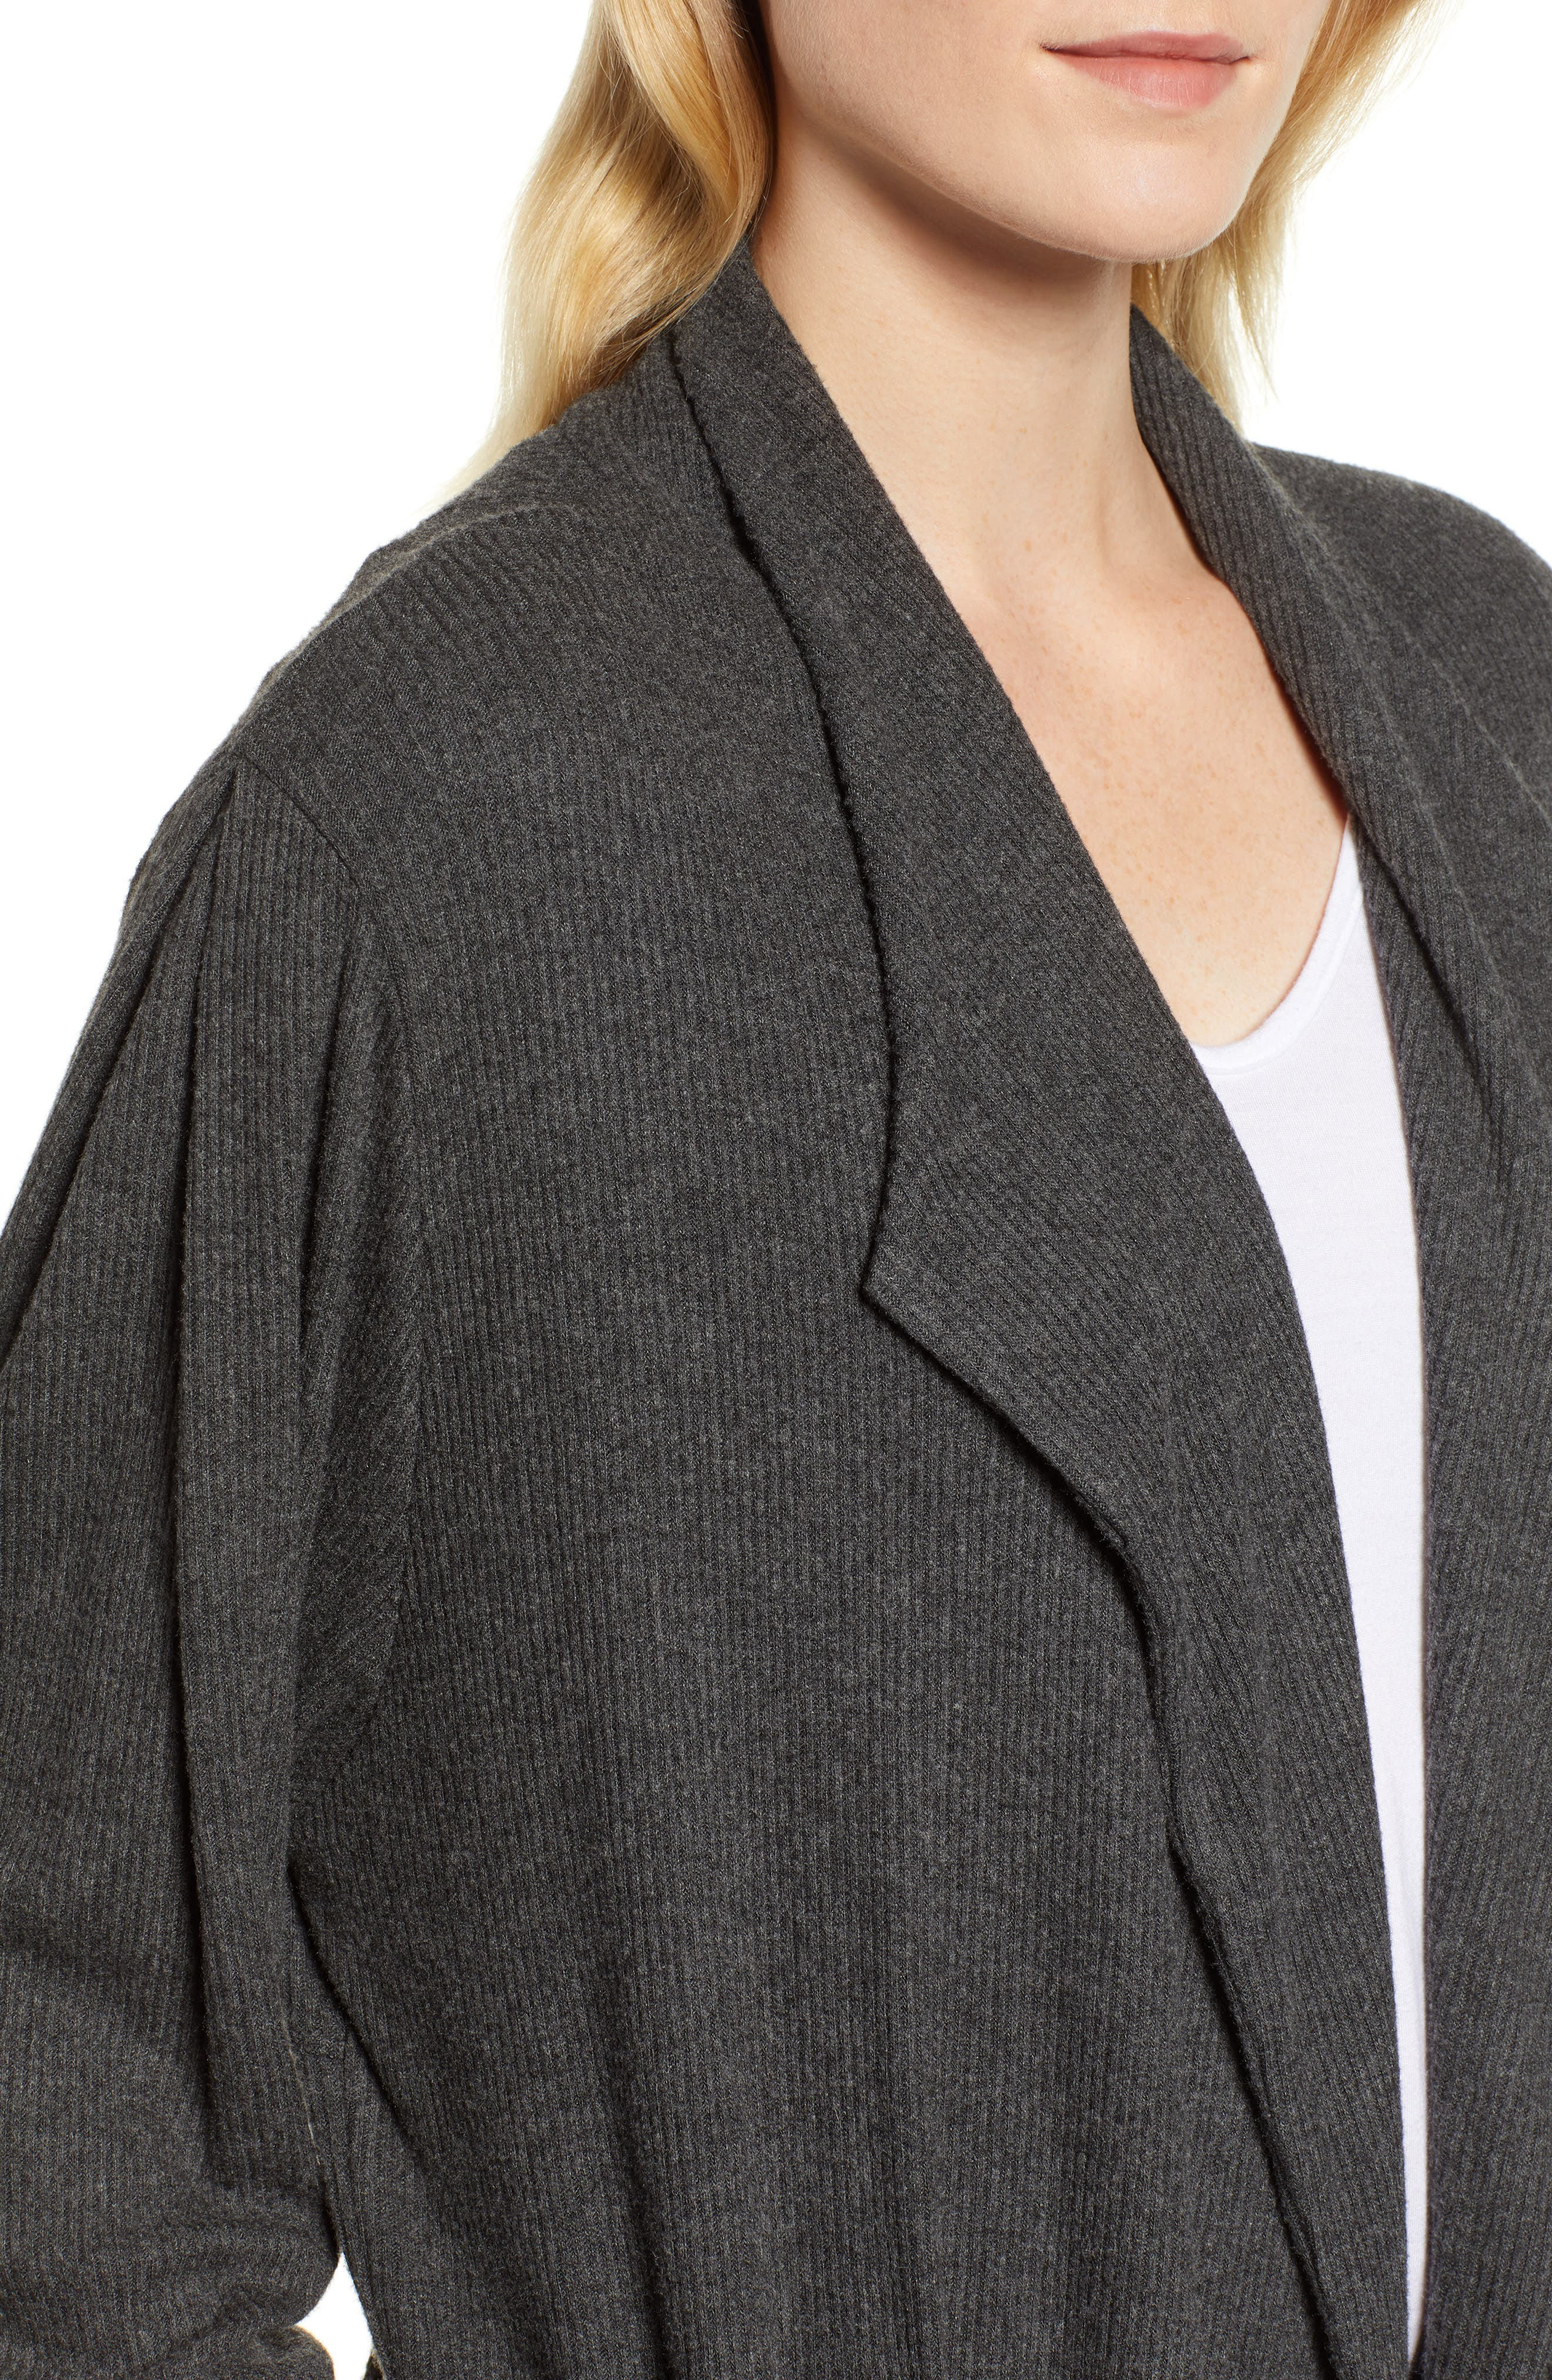 Cozy Rib Open Front Cardigan,                             Alternate thumbnail 4, color,                             ANTHRACITE